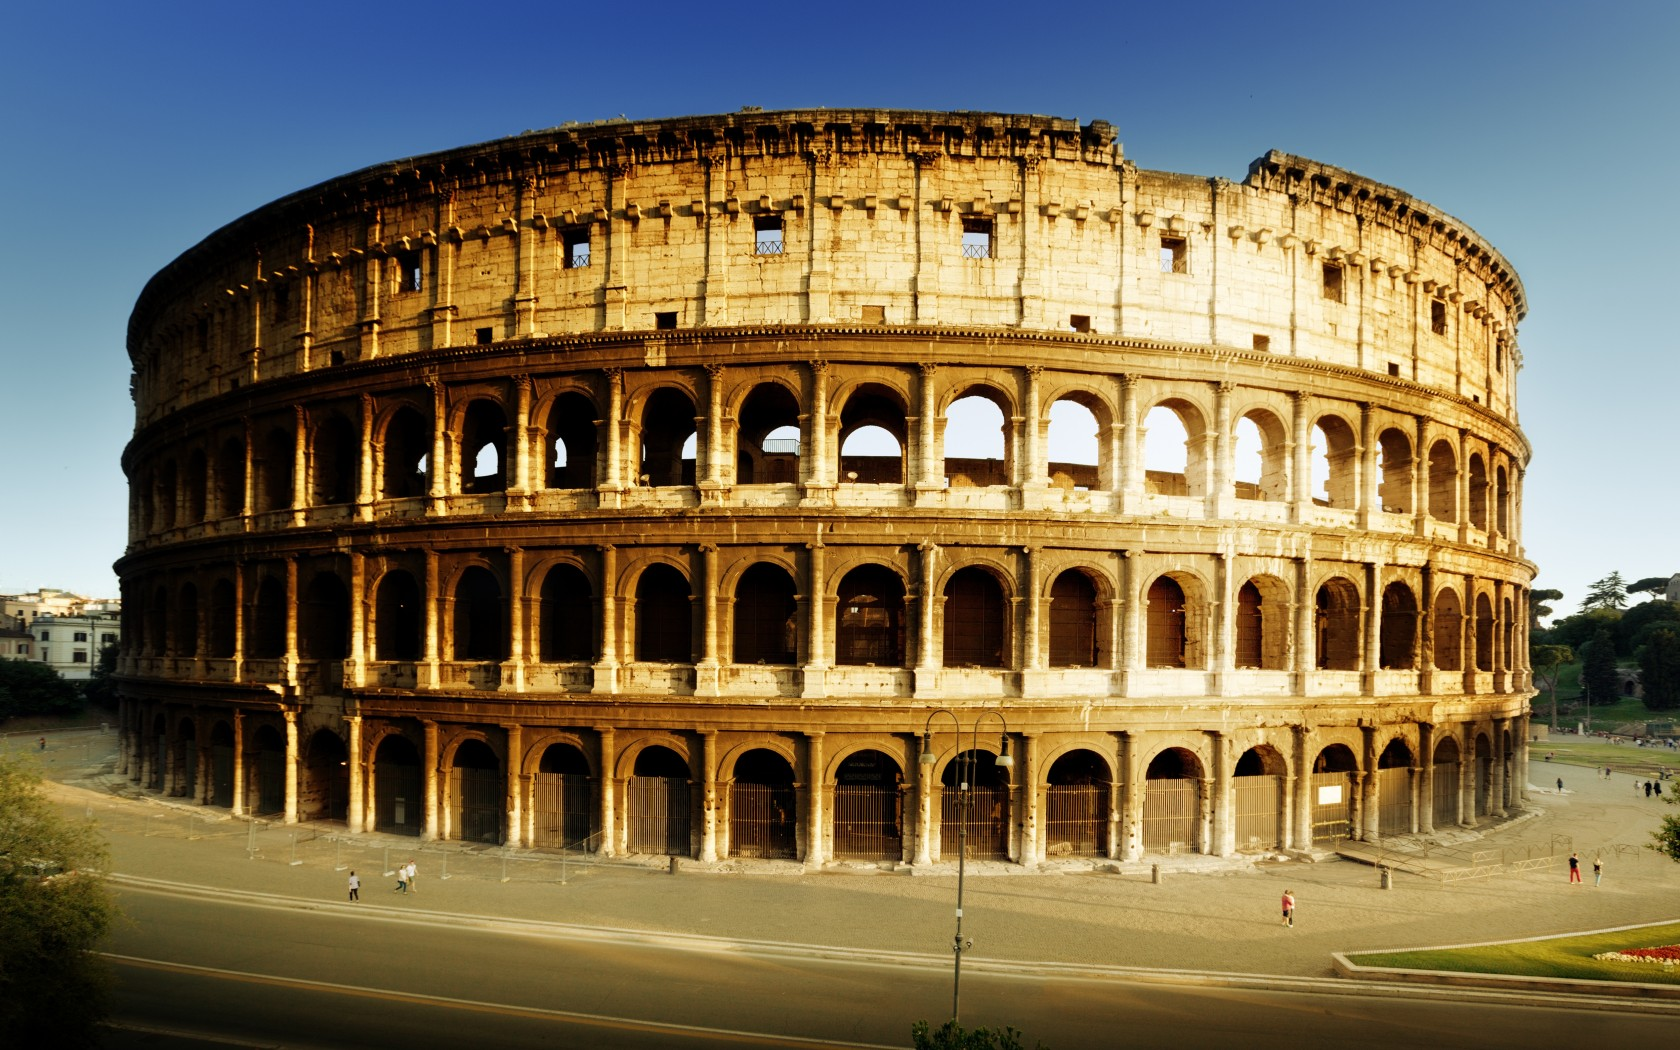 Colosseum from outside